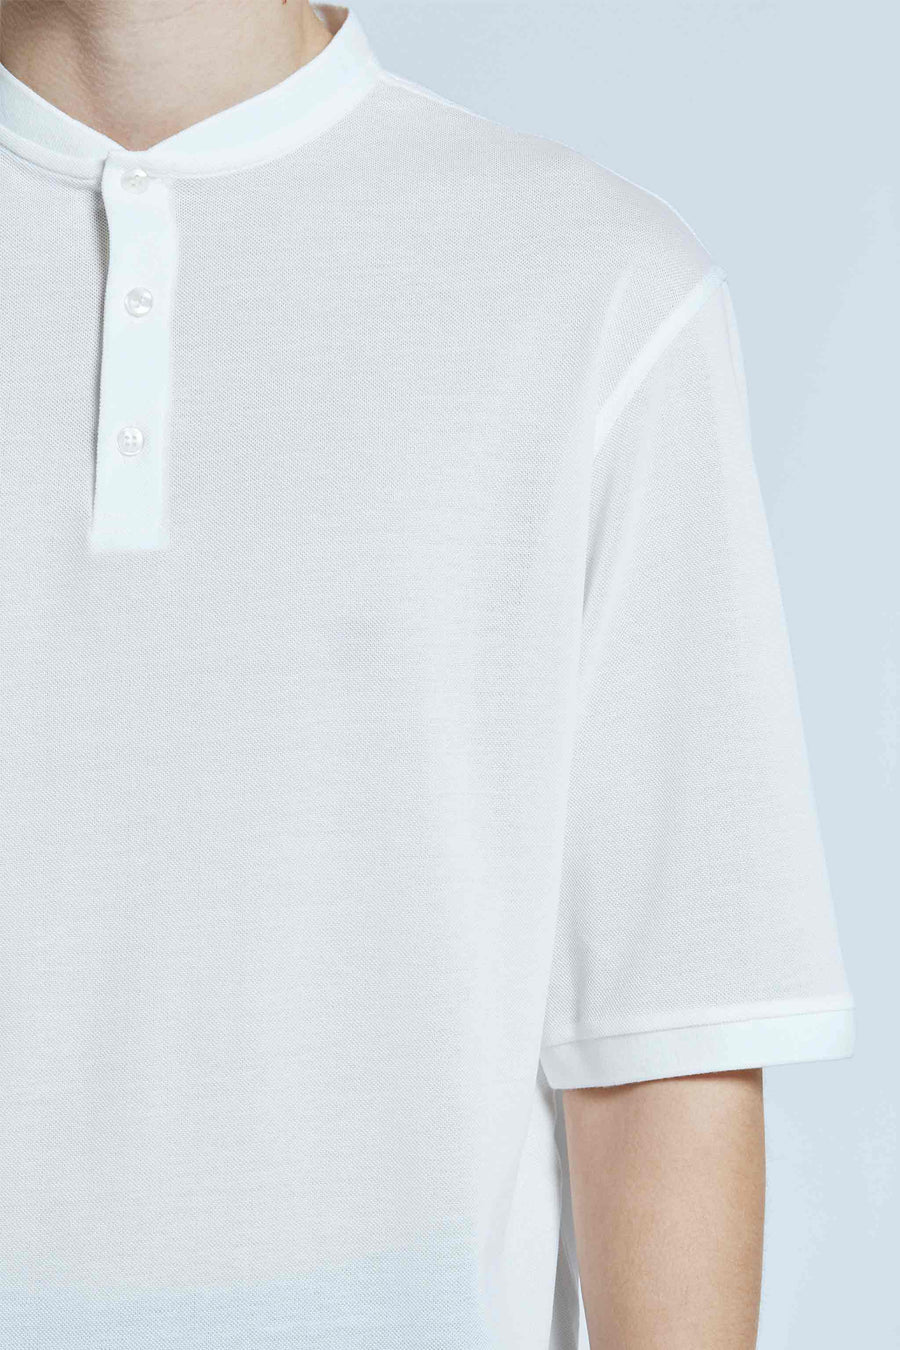 harlan + holden relaxed polo air white